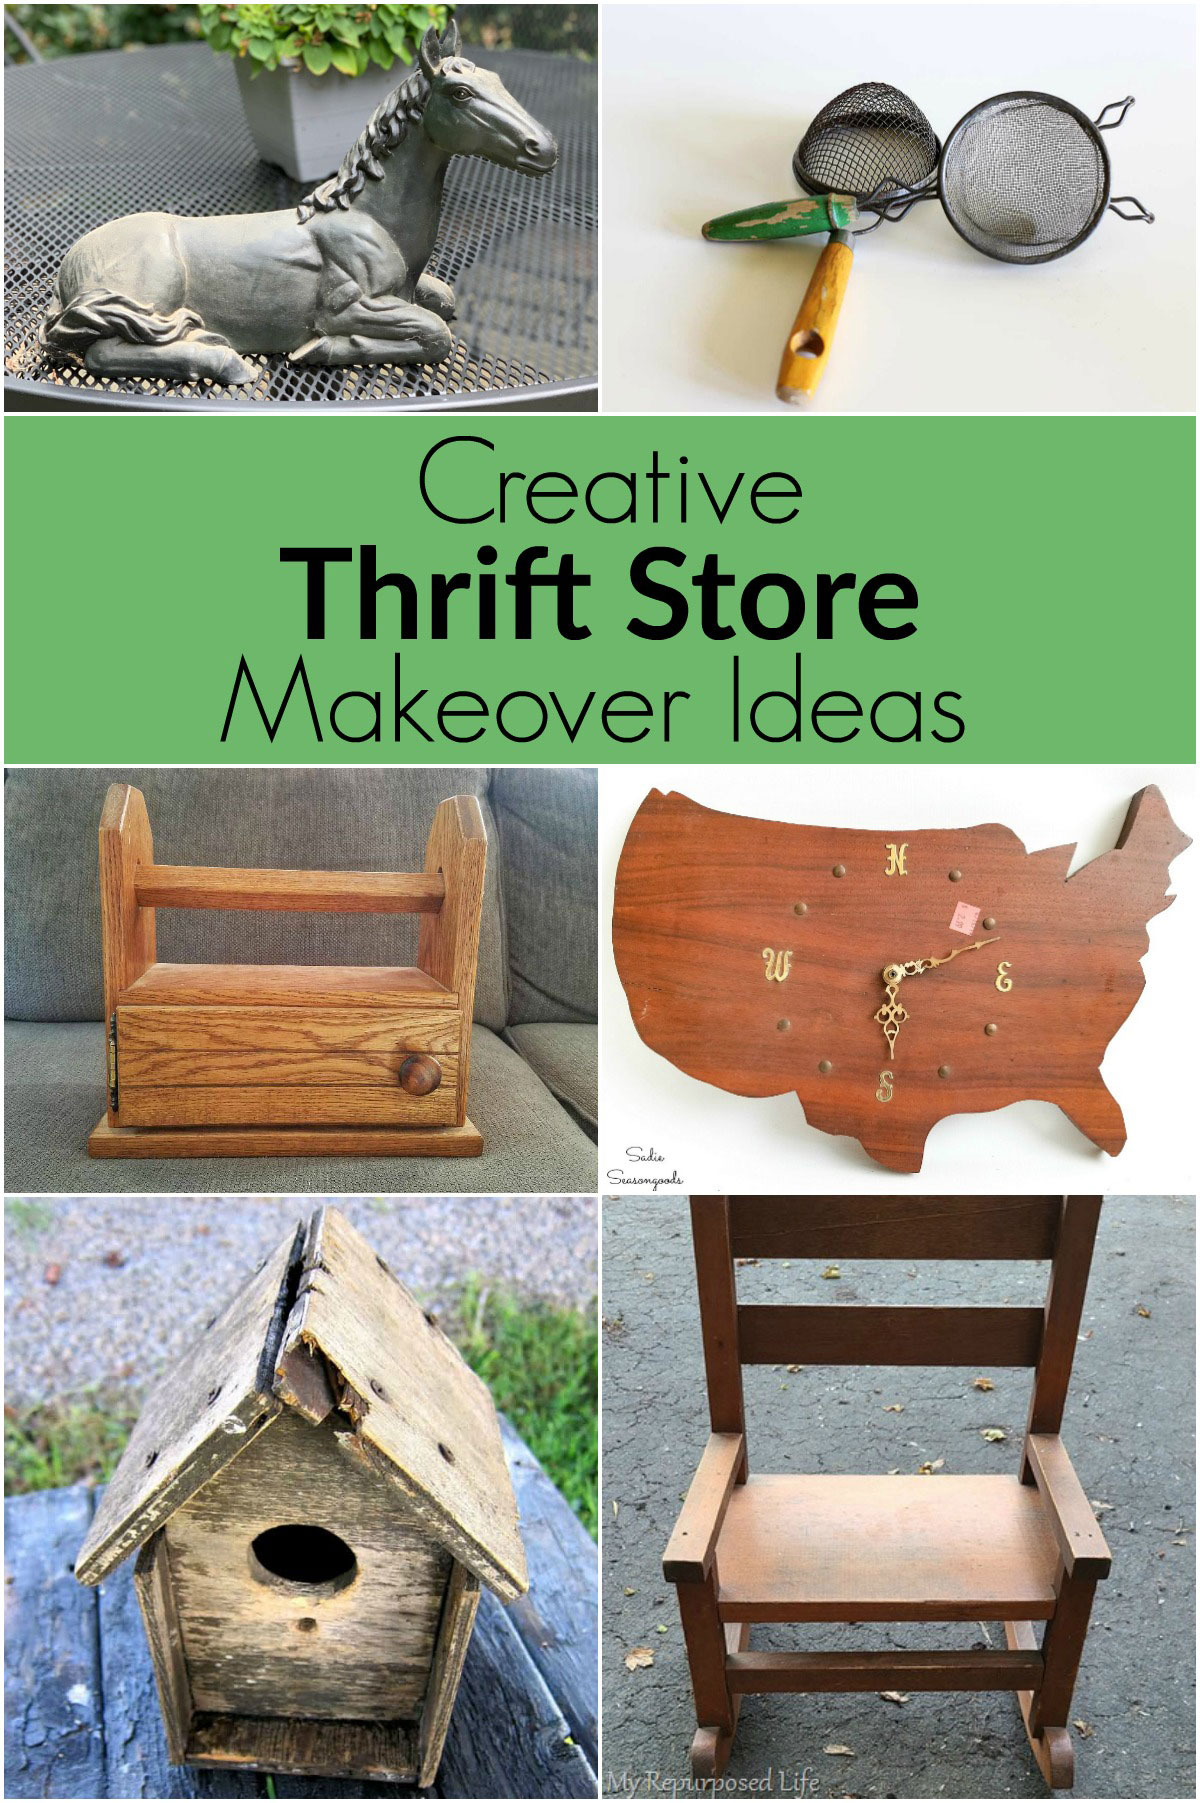 Creative ways to makeover thrift store finds